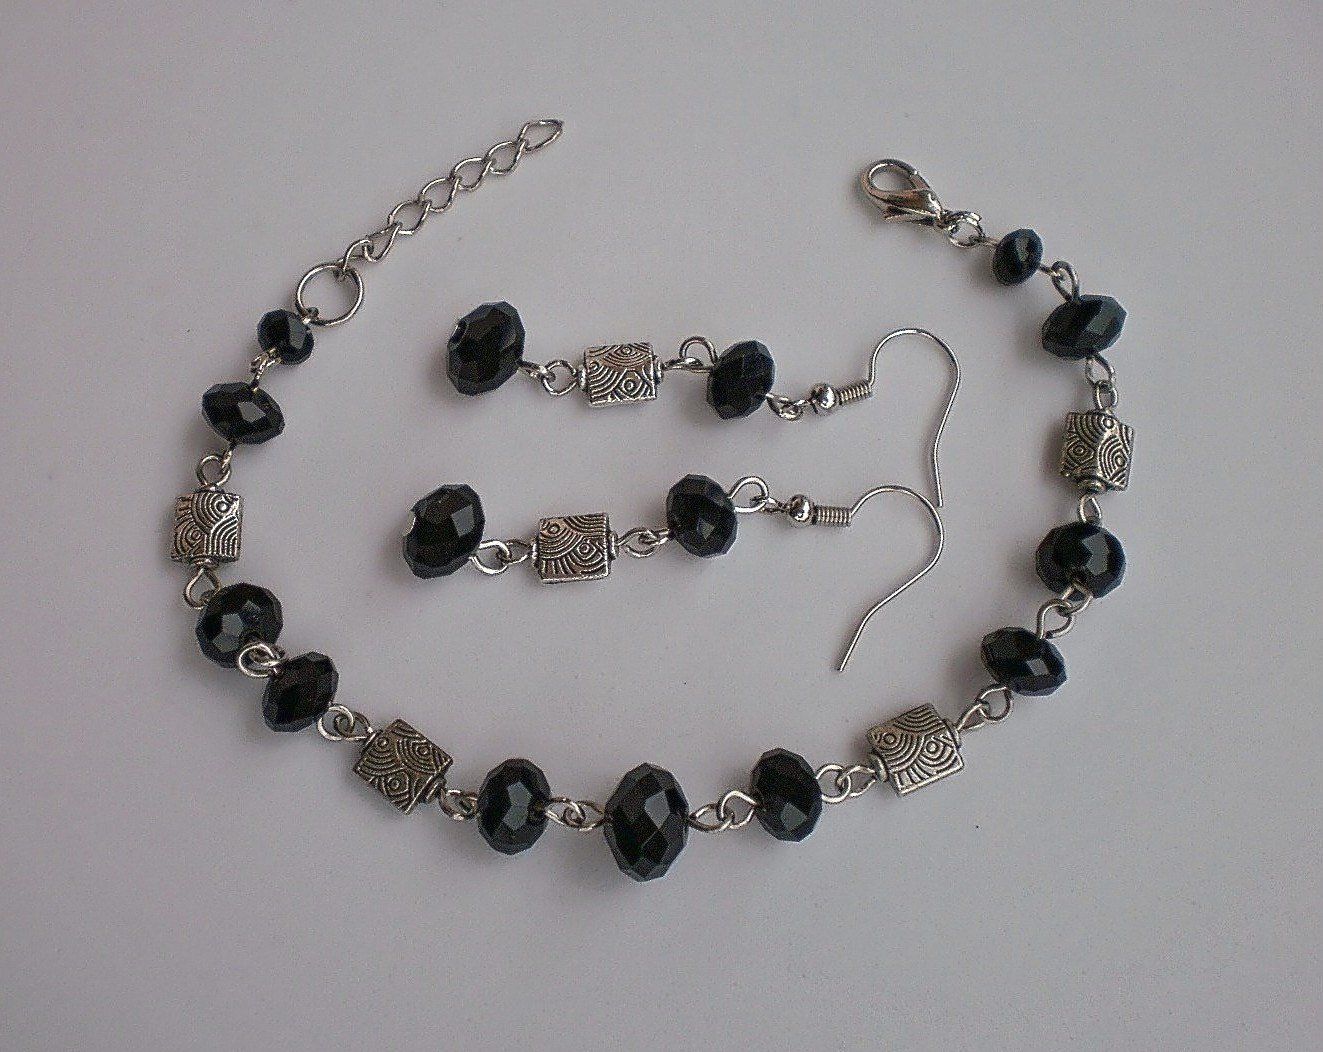 Jet Black Crystal Beaded Bracelet & Earrings Handcrafted Unique Design Jewelry Gift